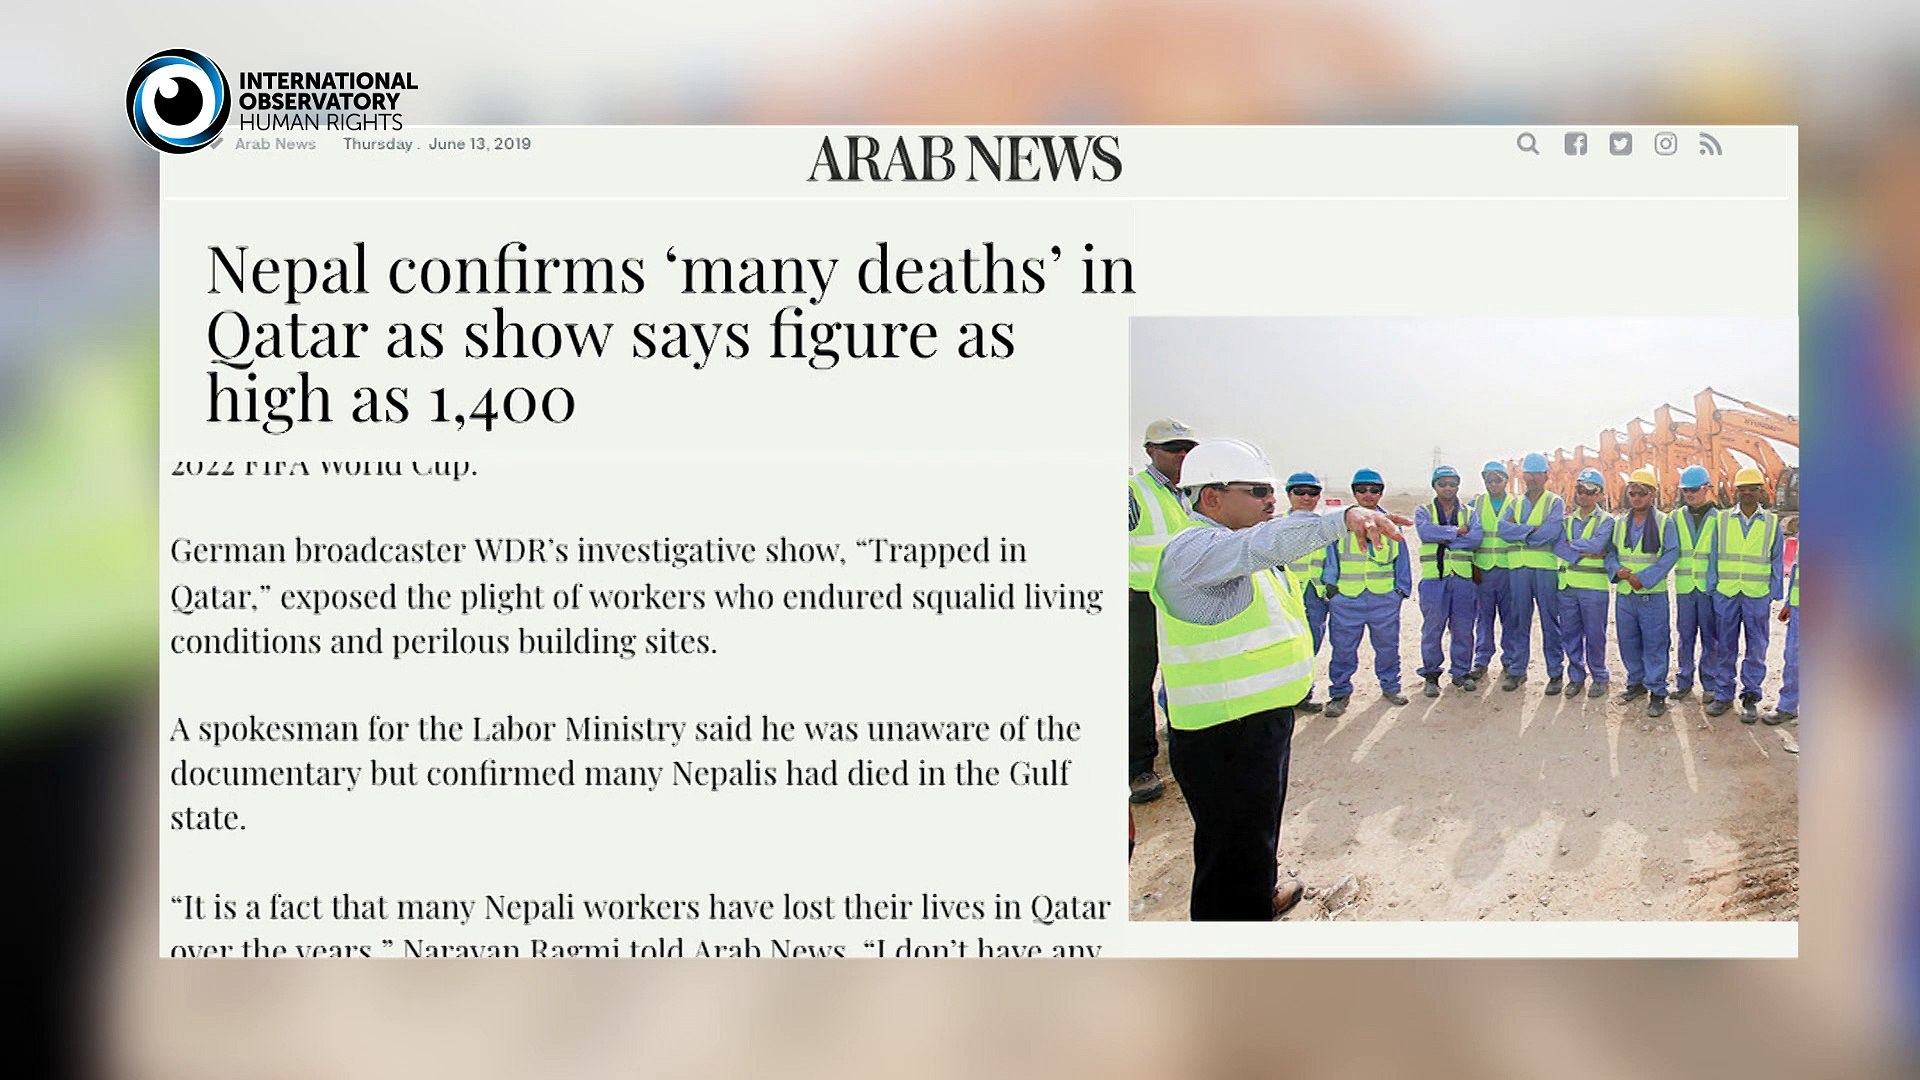 Trapped in Qatar: Hundreds of migrant workers die in Qatar in the Construction Industry